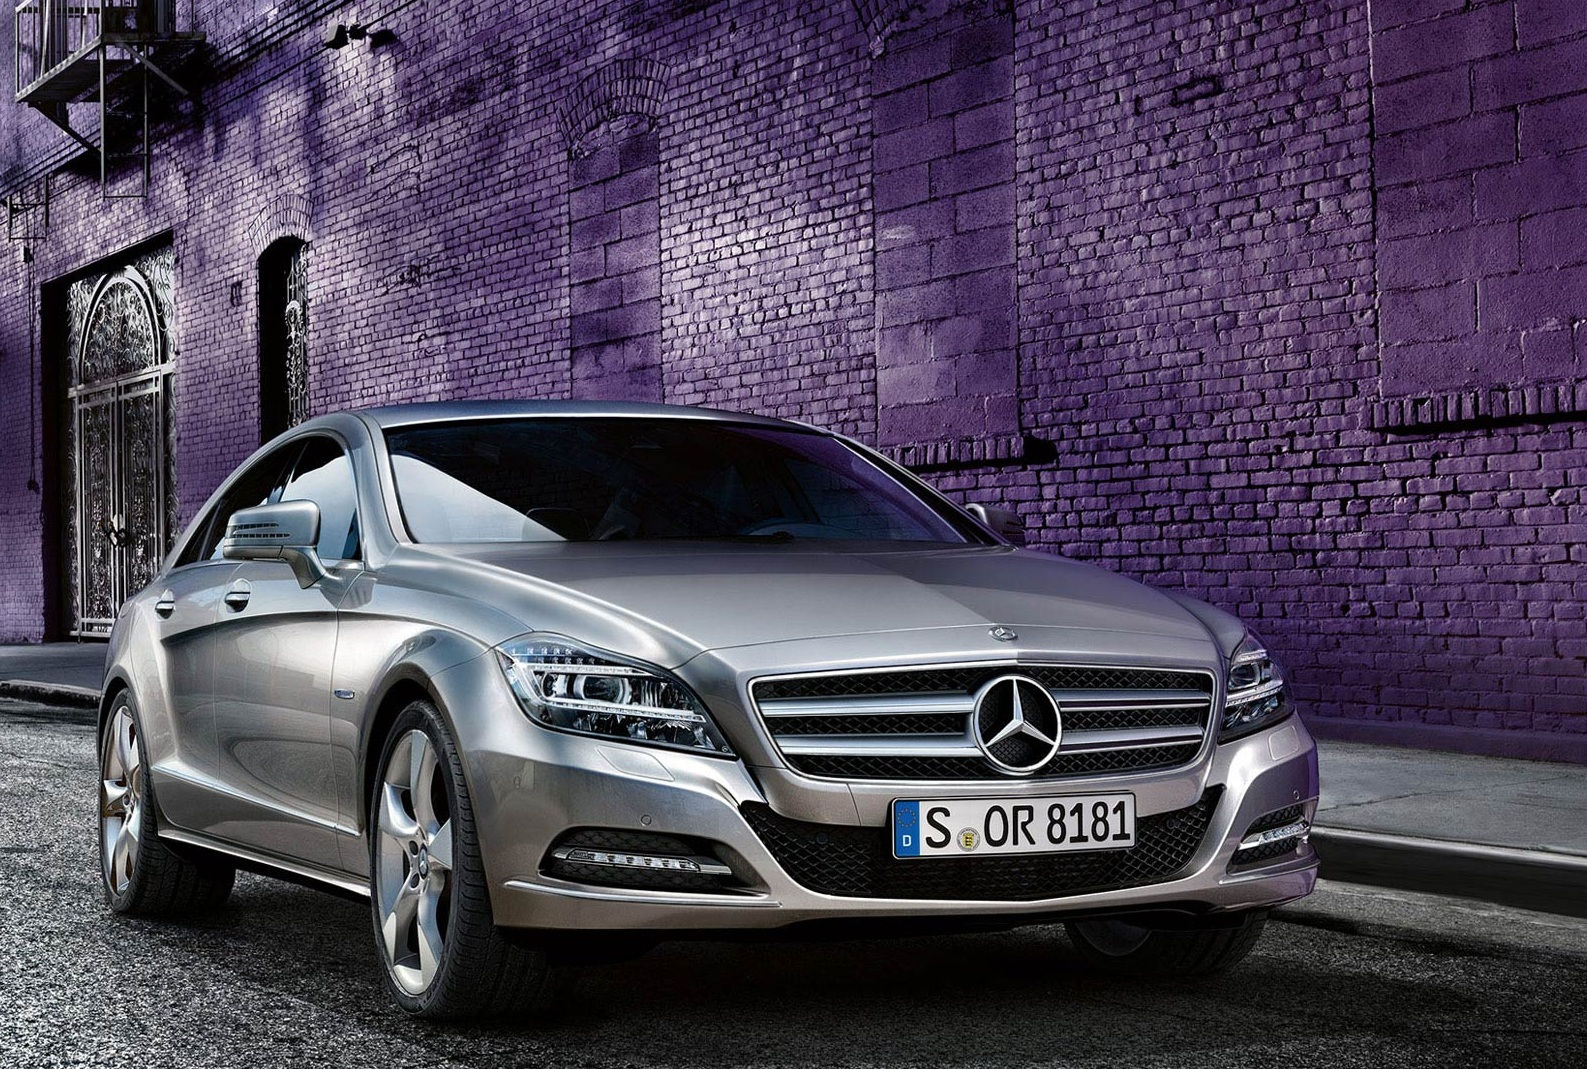 Mercedes benz cls 350 cdi price in india for Mercedes benz cls price